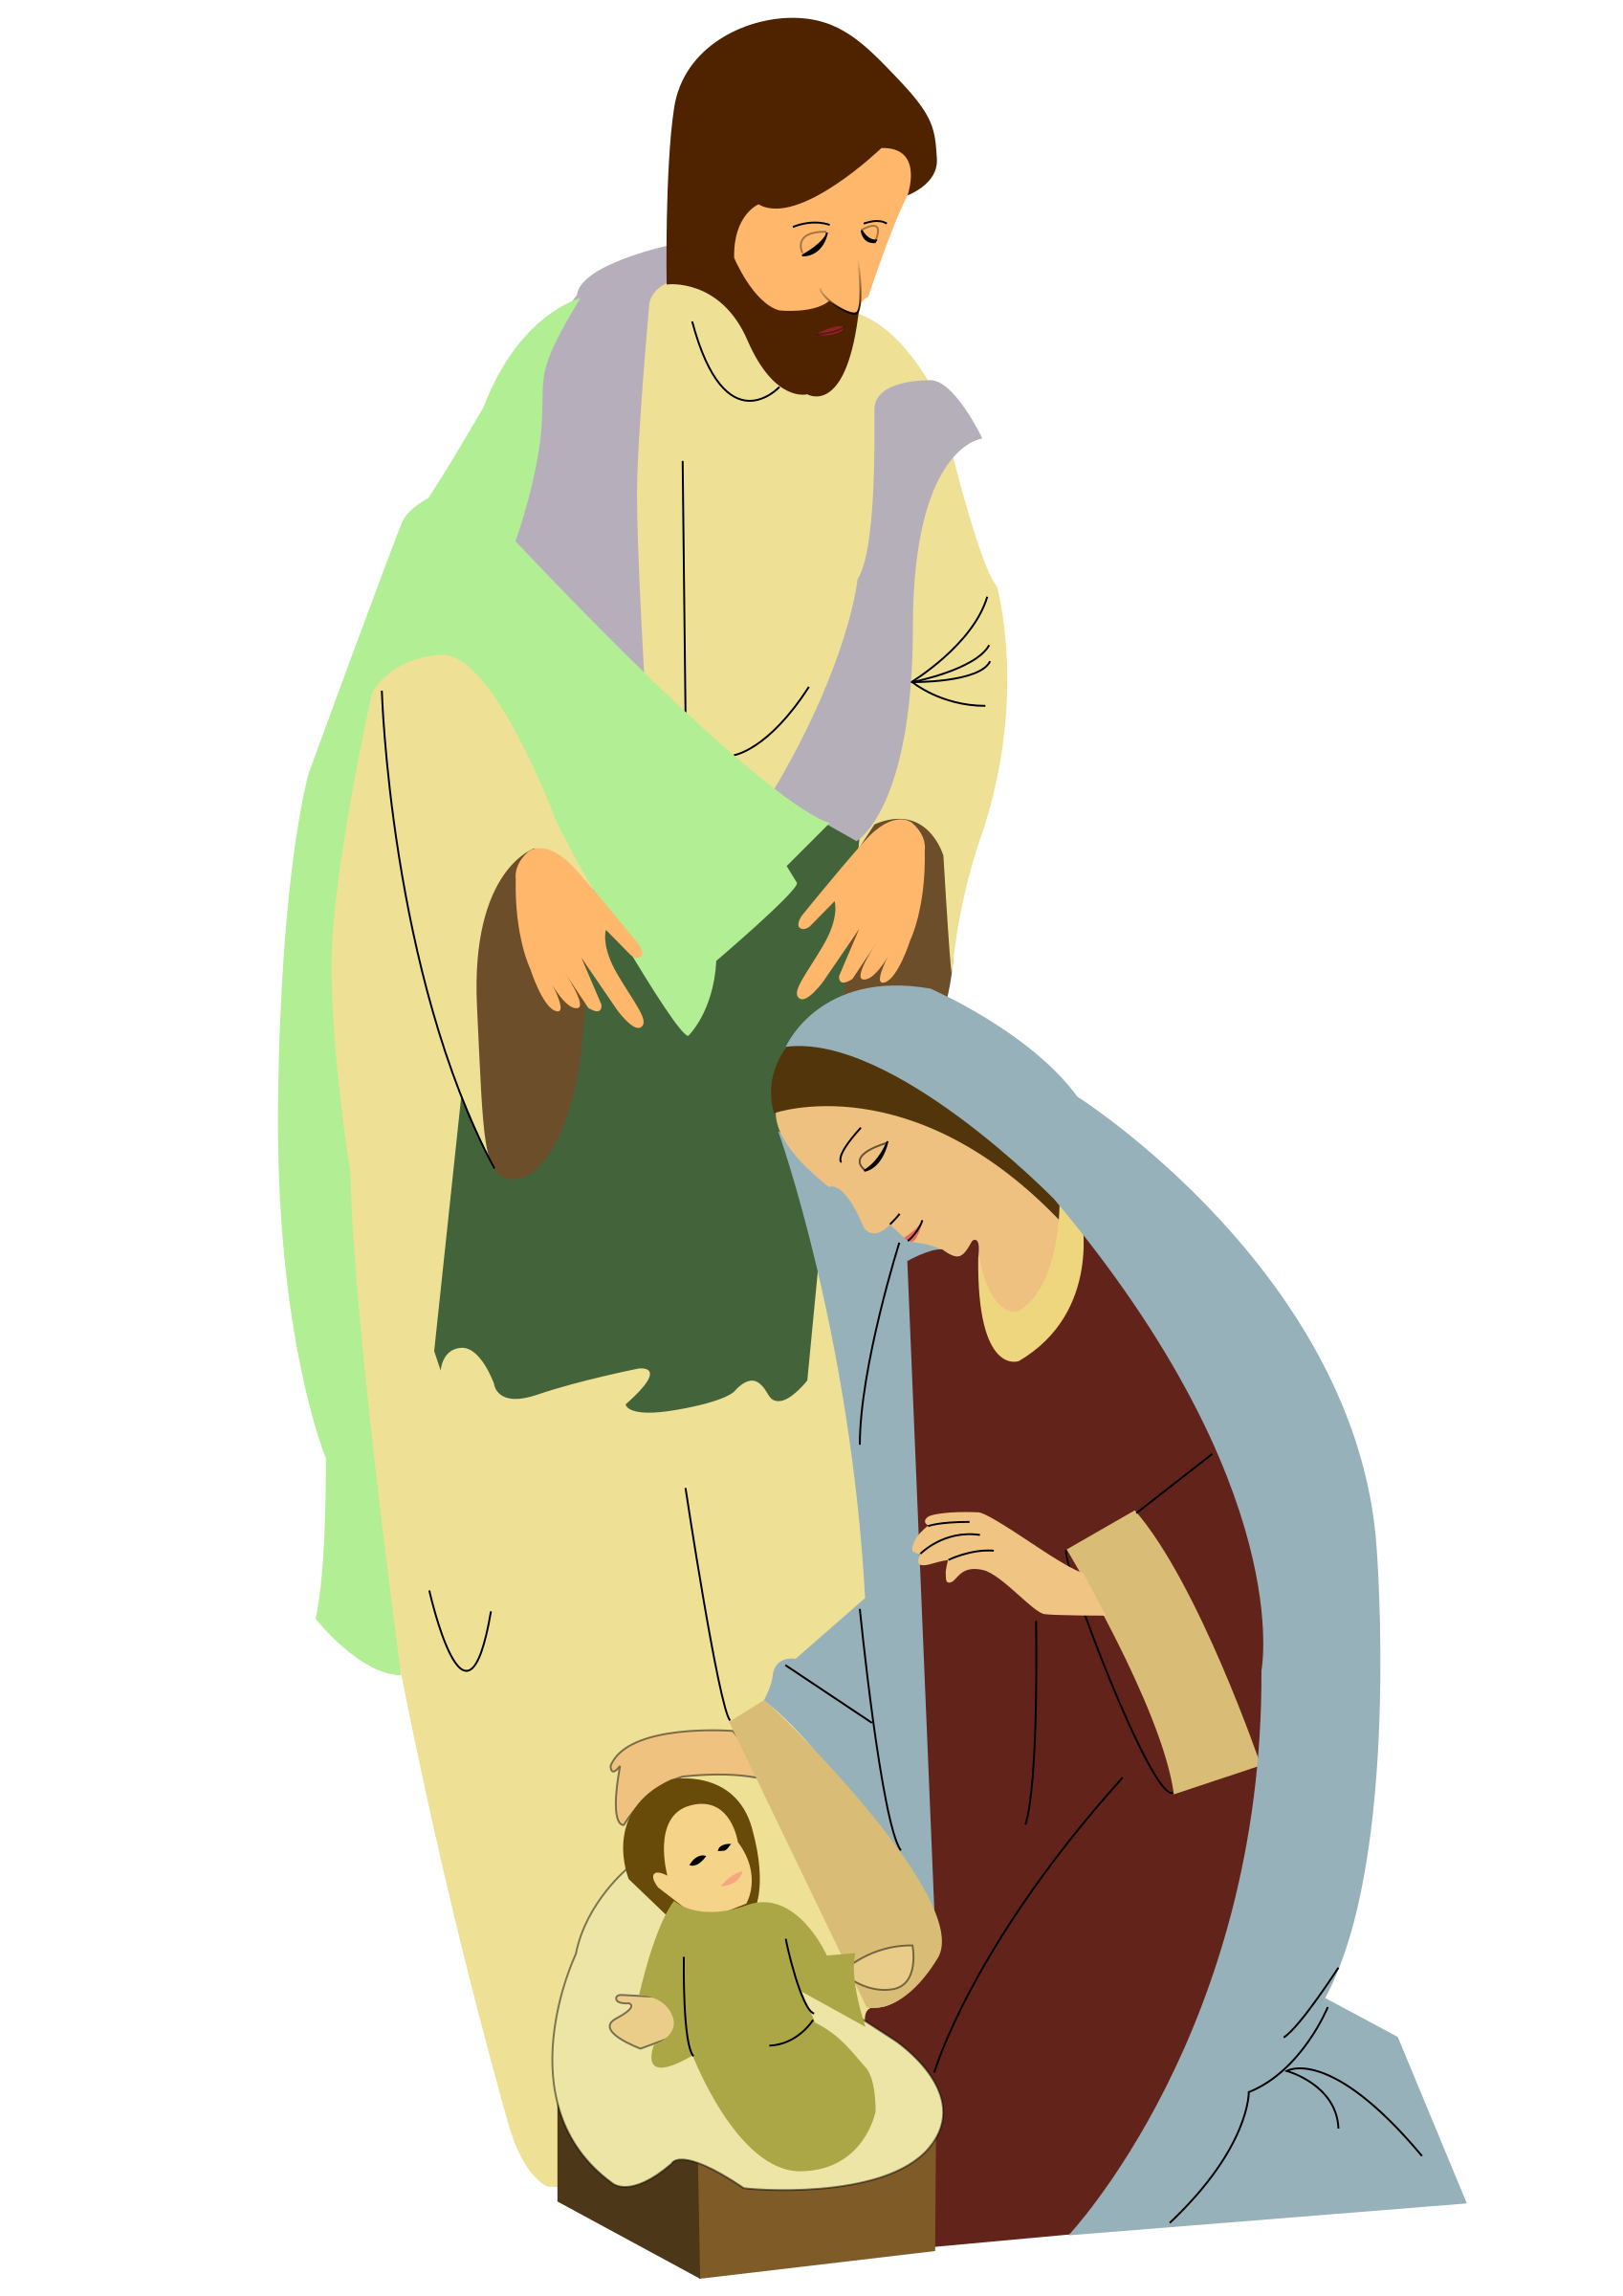 Big image png. Nativity clipart background